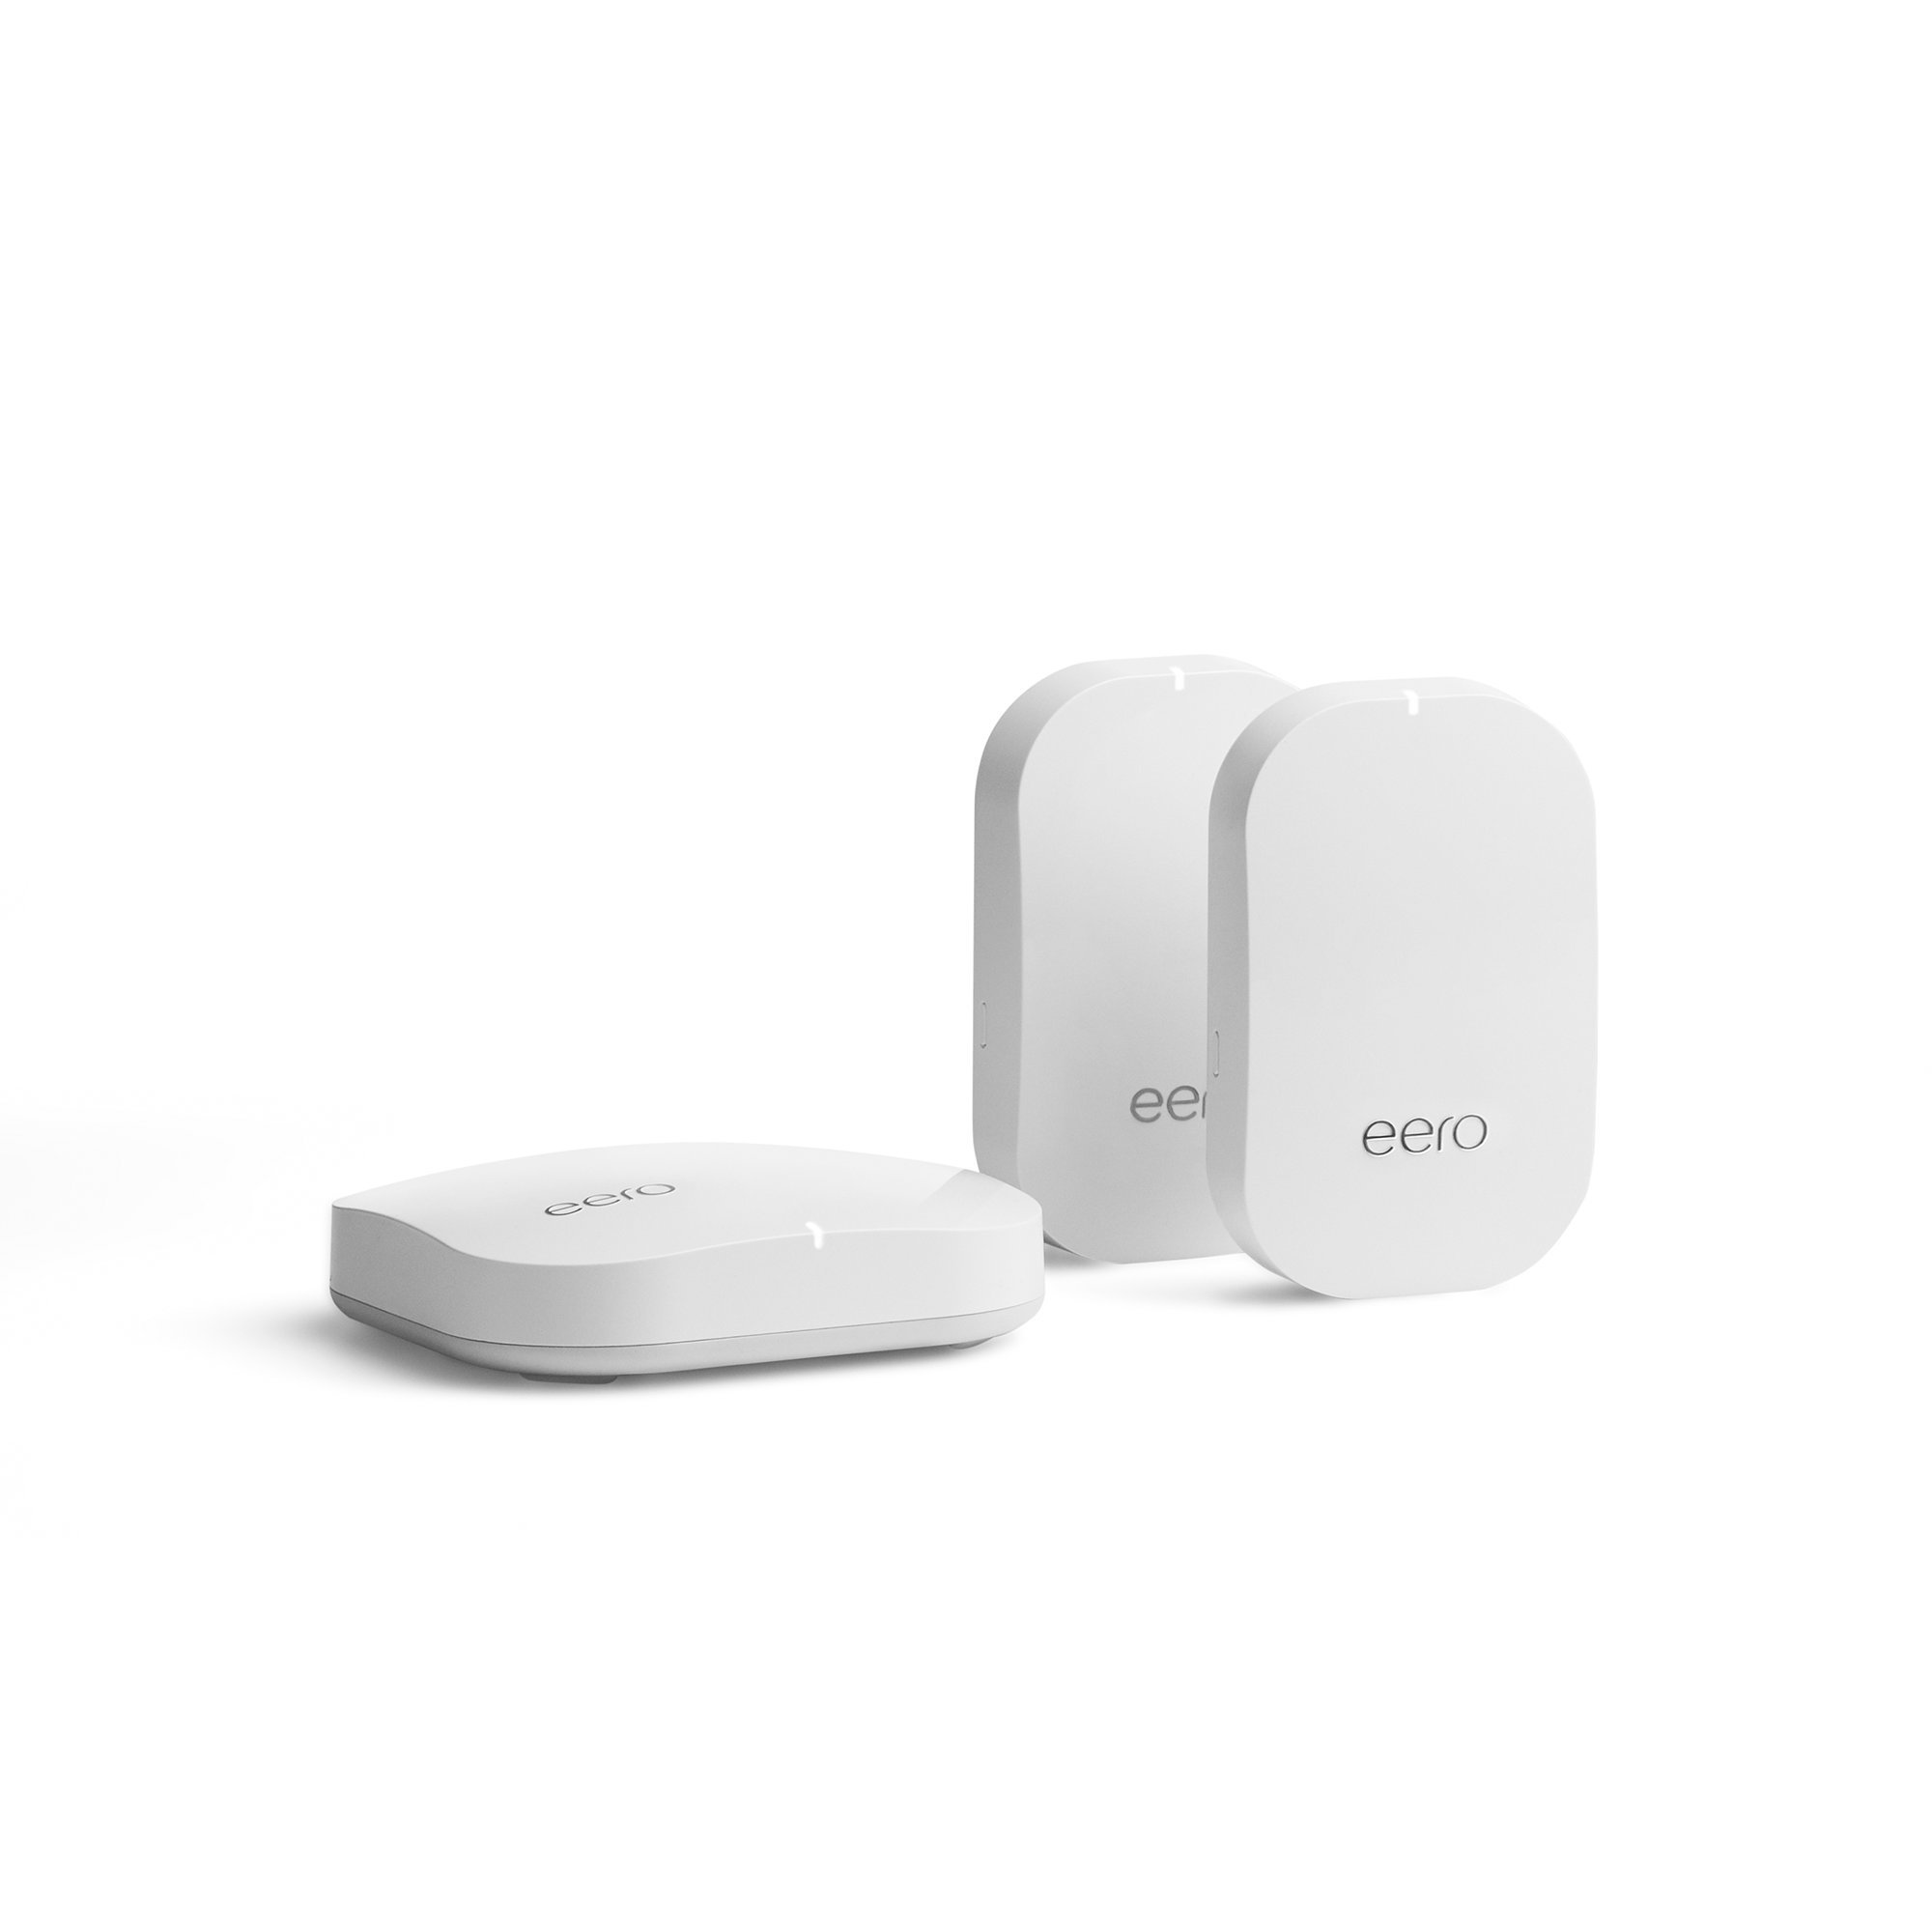 eero Home WiFi System (1 eero + 2 eero Beacon) – Advanced Tri-Band Mesh WiFi System to Replace Traditional WiFi Router and WiFi Extenders – Coverage: 2 to 4 ...